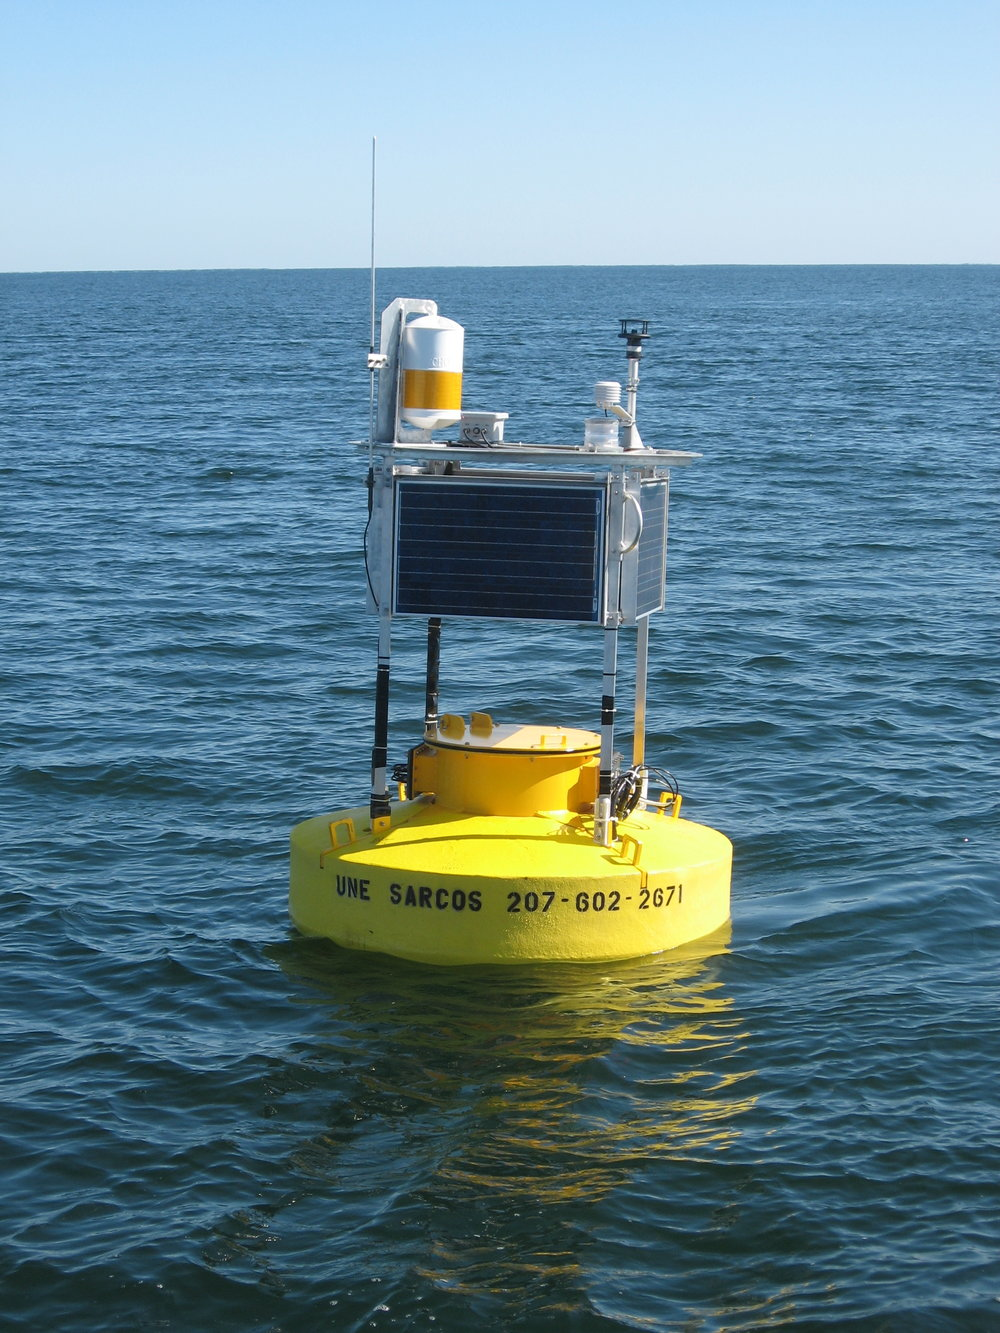 MEET THE BUOY: Data telemetry buoys house instrumentation that make air and water measurements. Data is sent back to shore via a cell signal and provides near real-time information for boaters, scientists, and commercial fishermen.